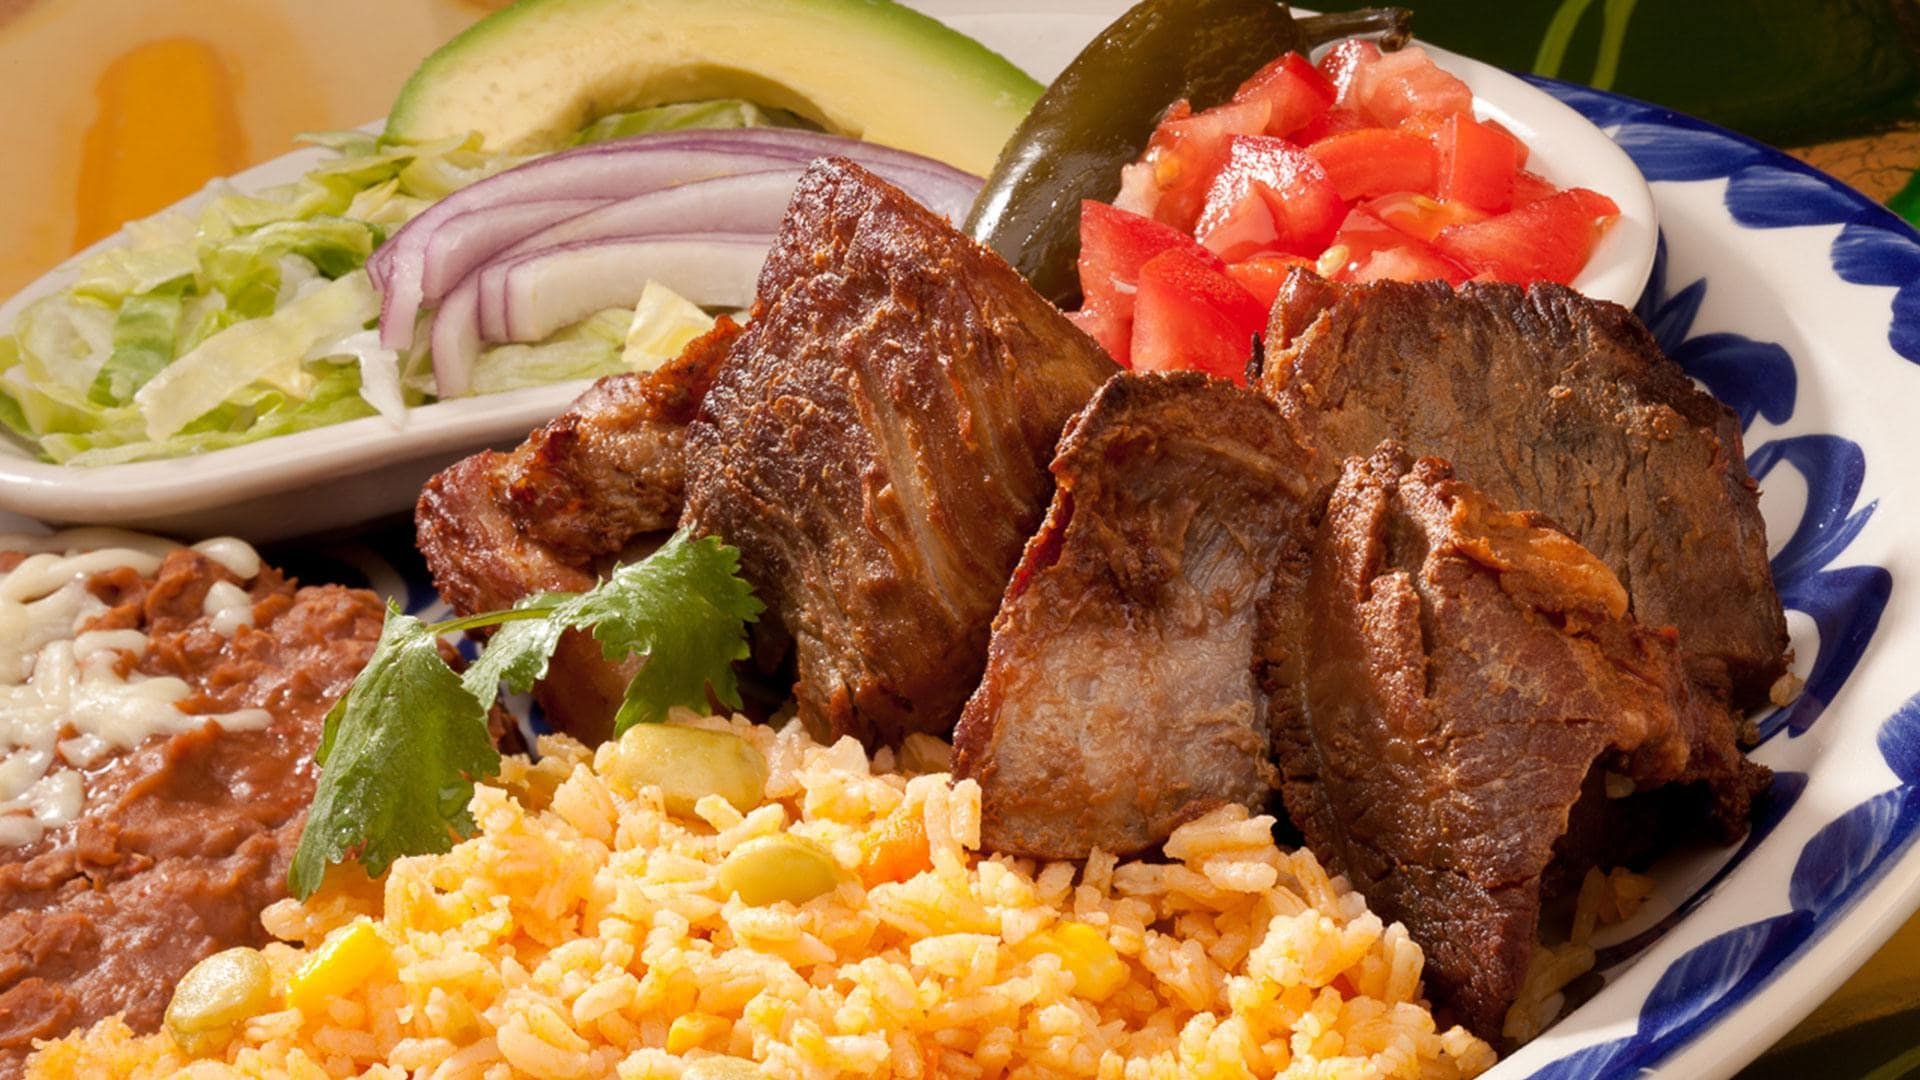 Menu authentic mexican cuisine la mesa mexican restaurant for Authentic mexican cuisine